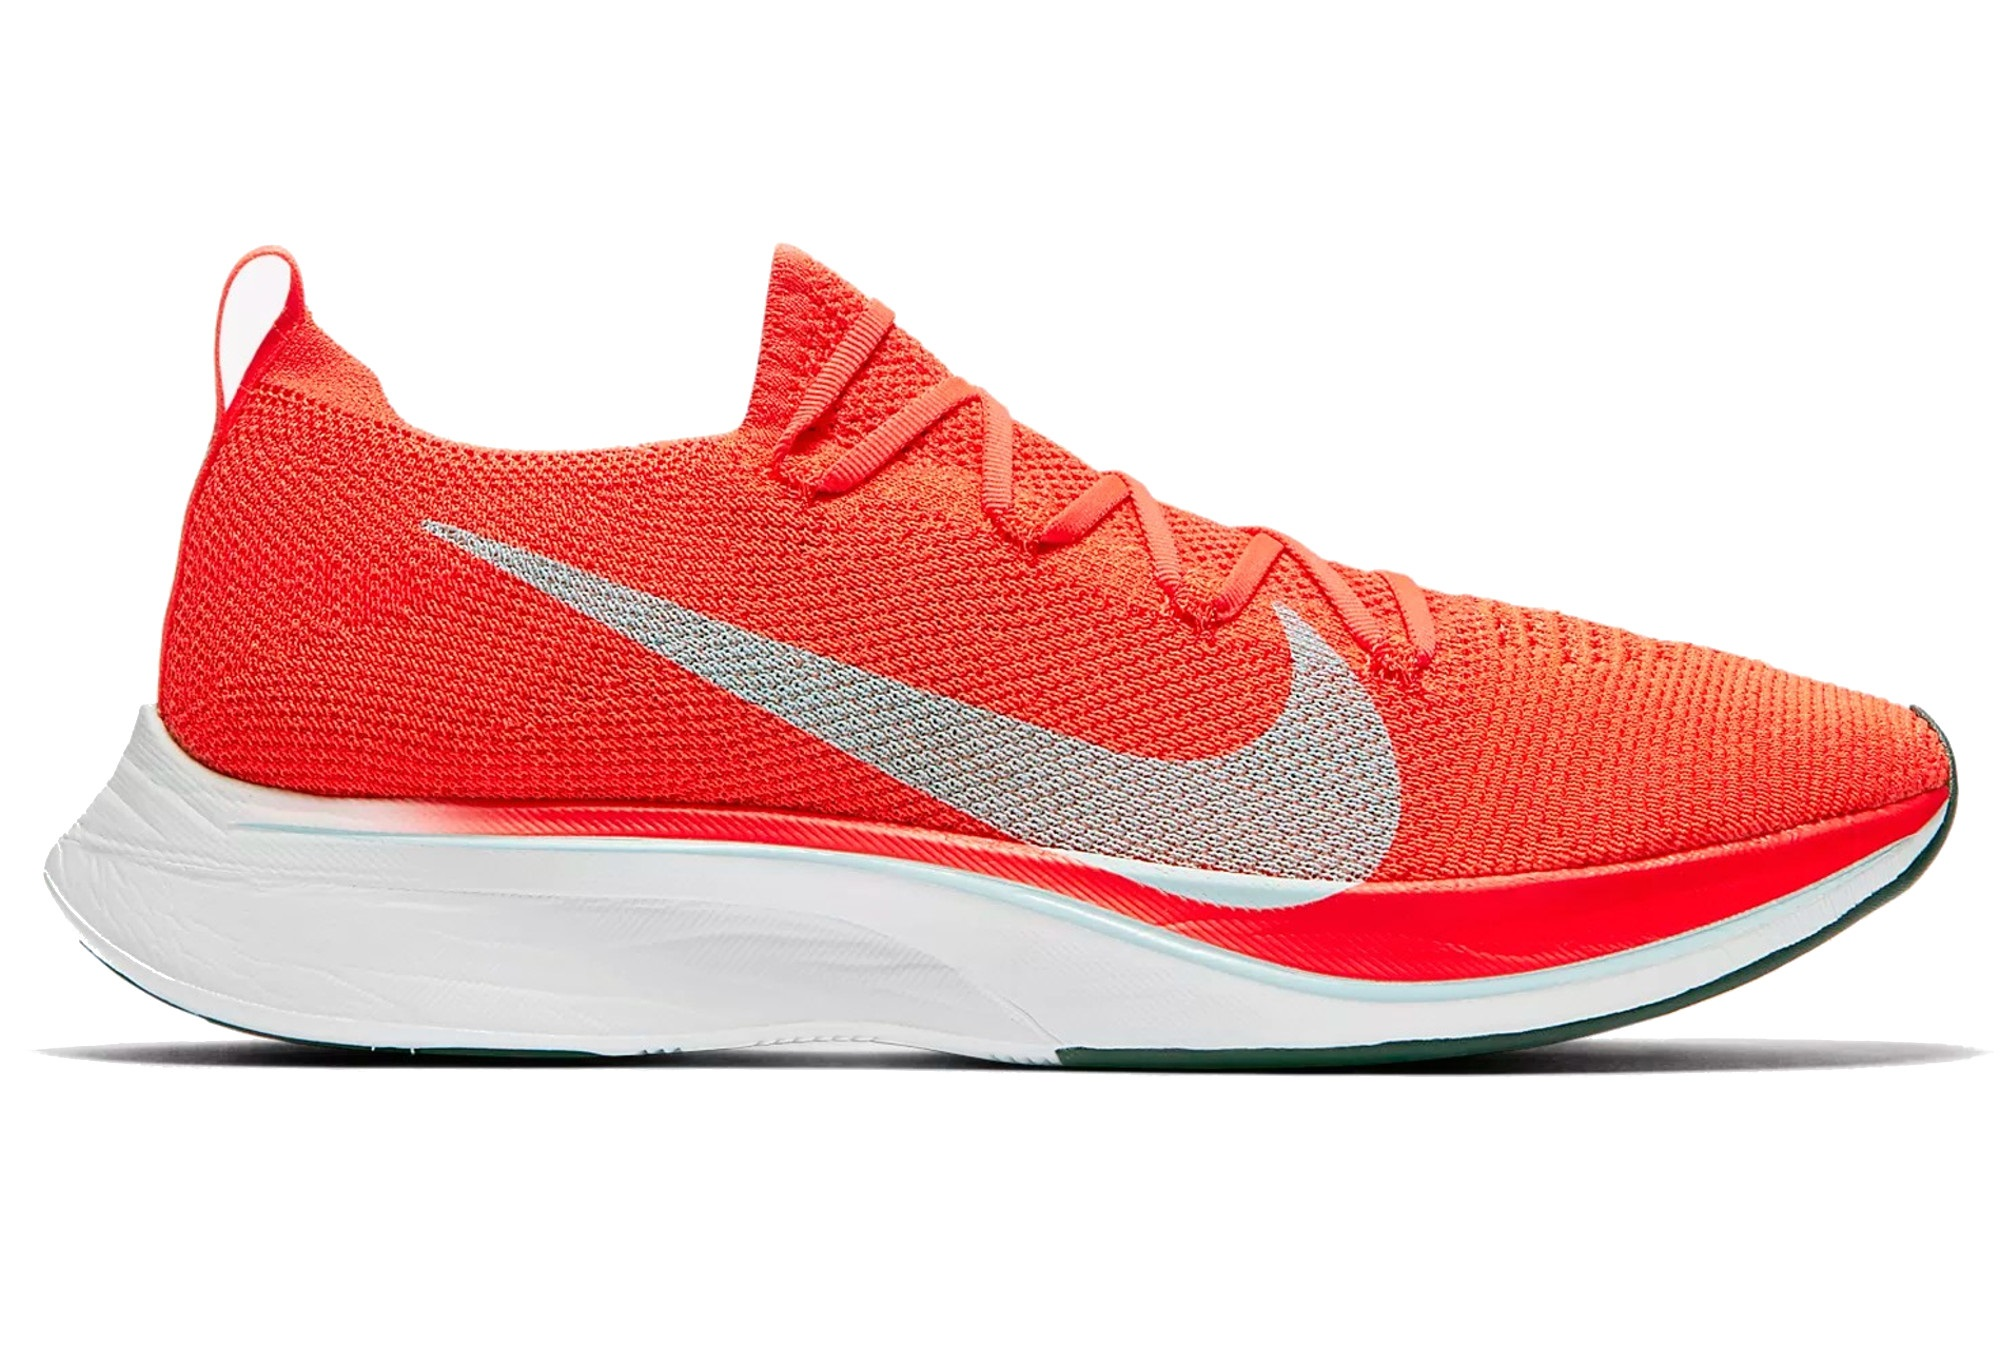 278ca2f5e0d7 Nike Shoes VaporFly 4 Flyknit Grey Red Unisex